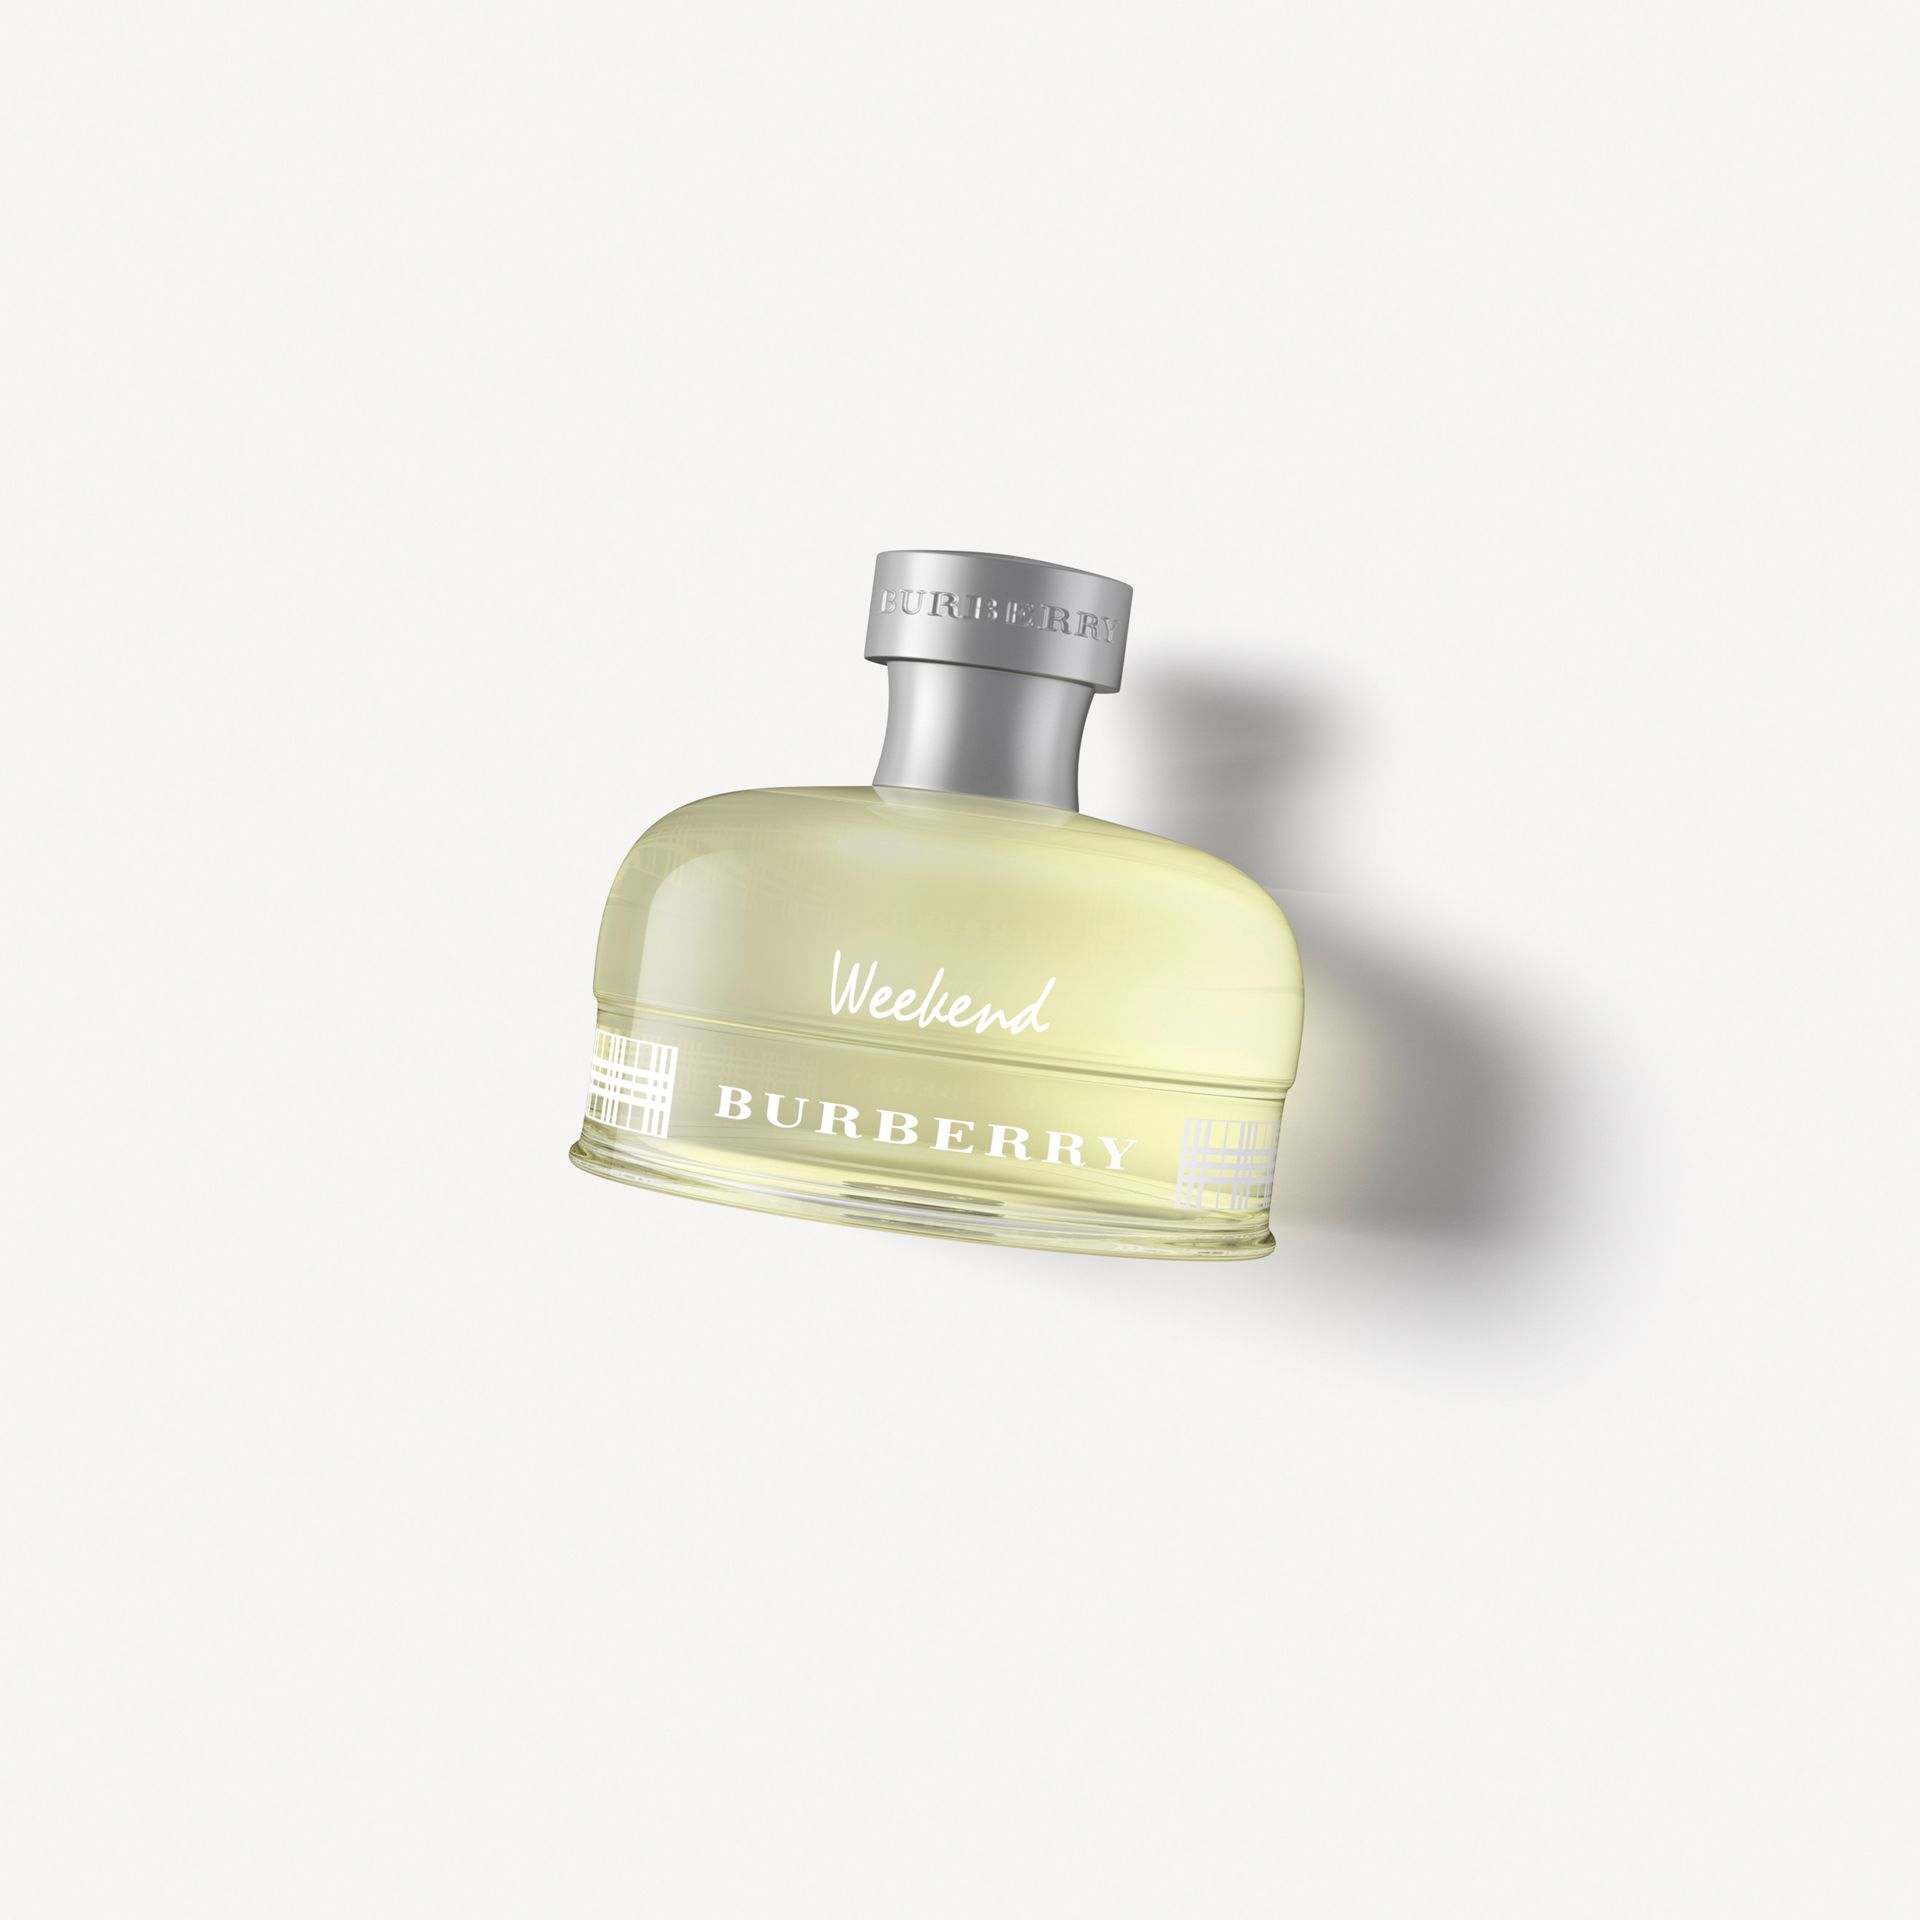 Burberry Weekend Eau de Parfum 100ml - Women | Burberry Australia - gallery image 0